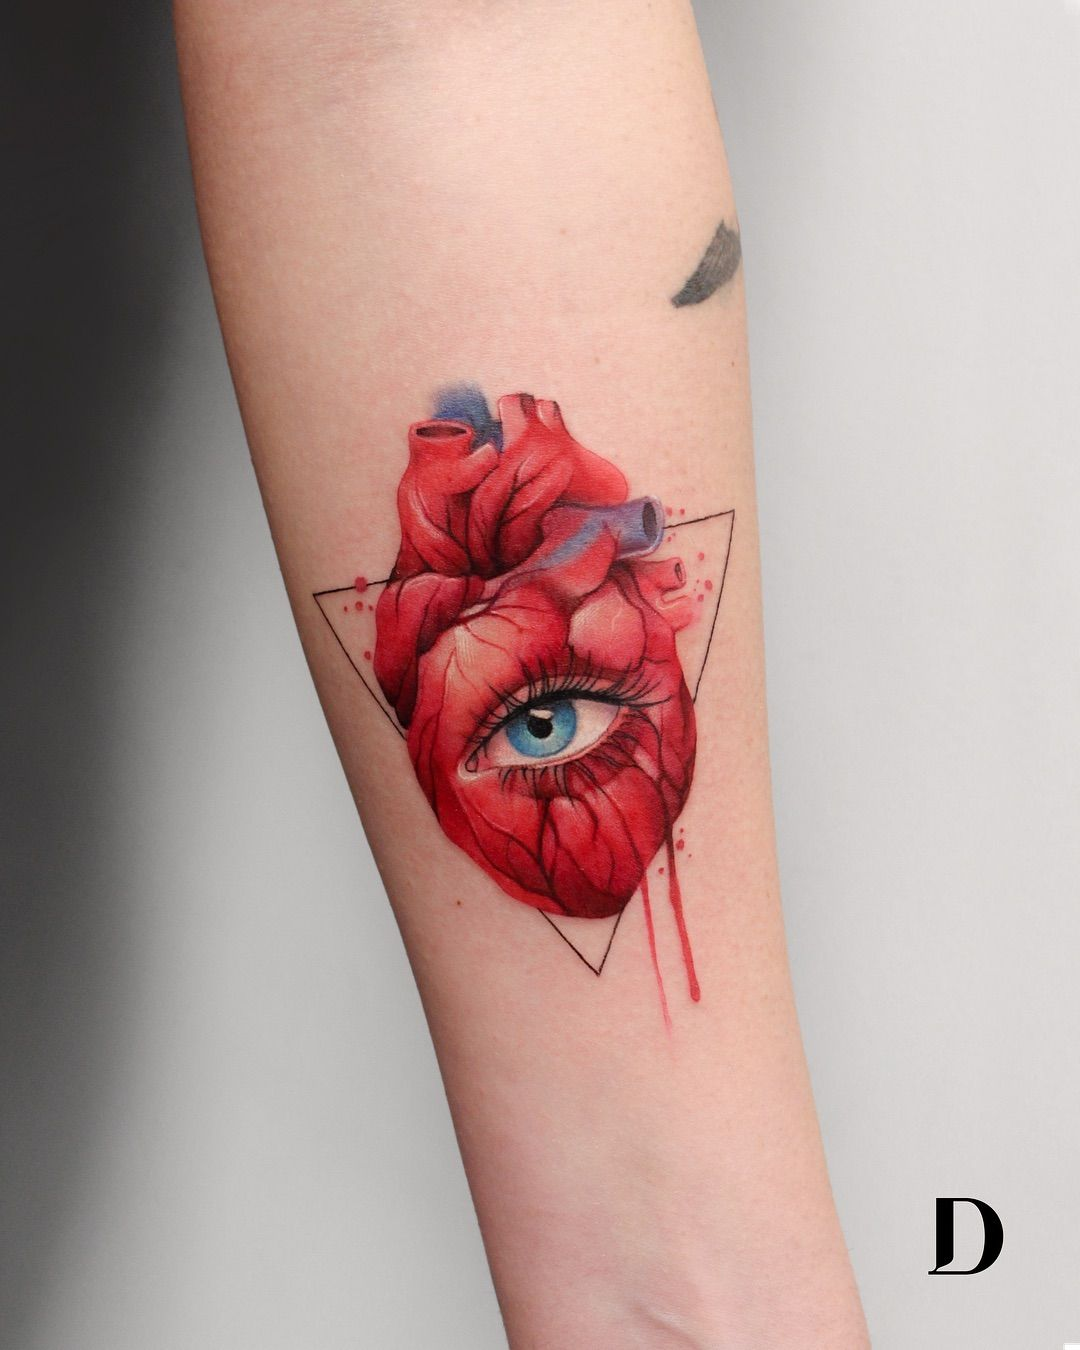 Tattoo Designs,ideas And Meanings